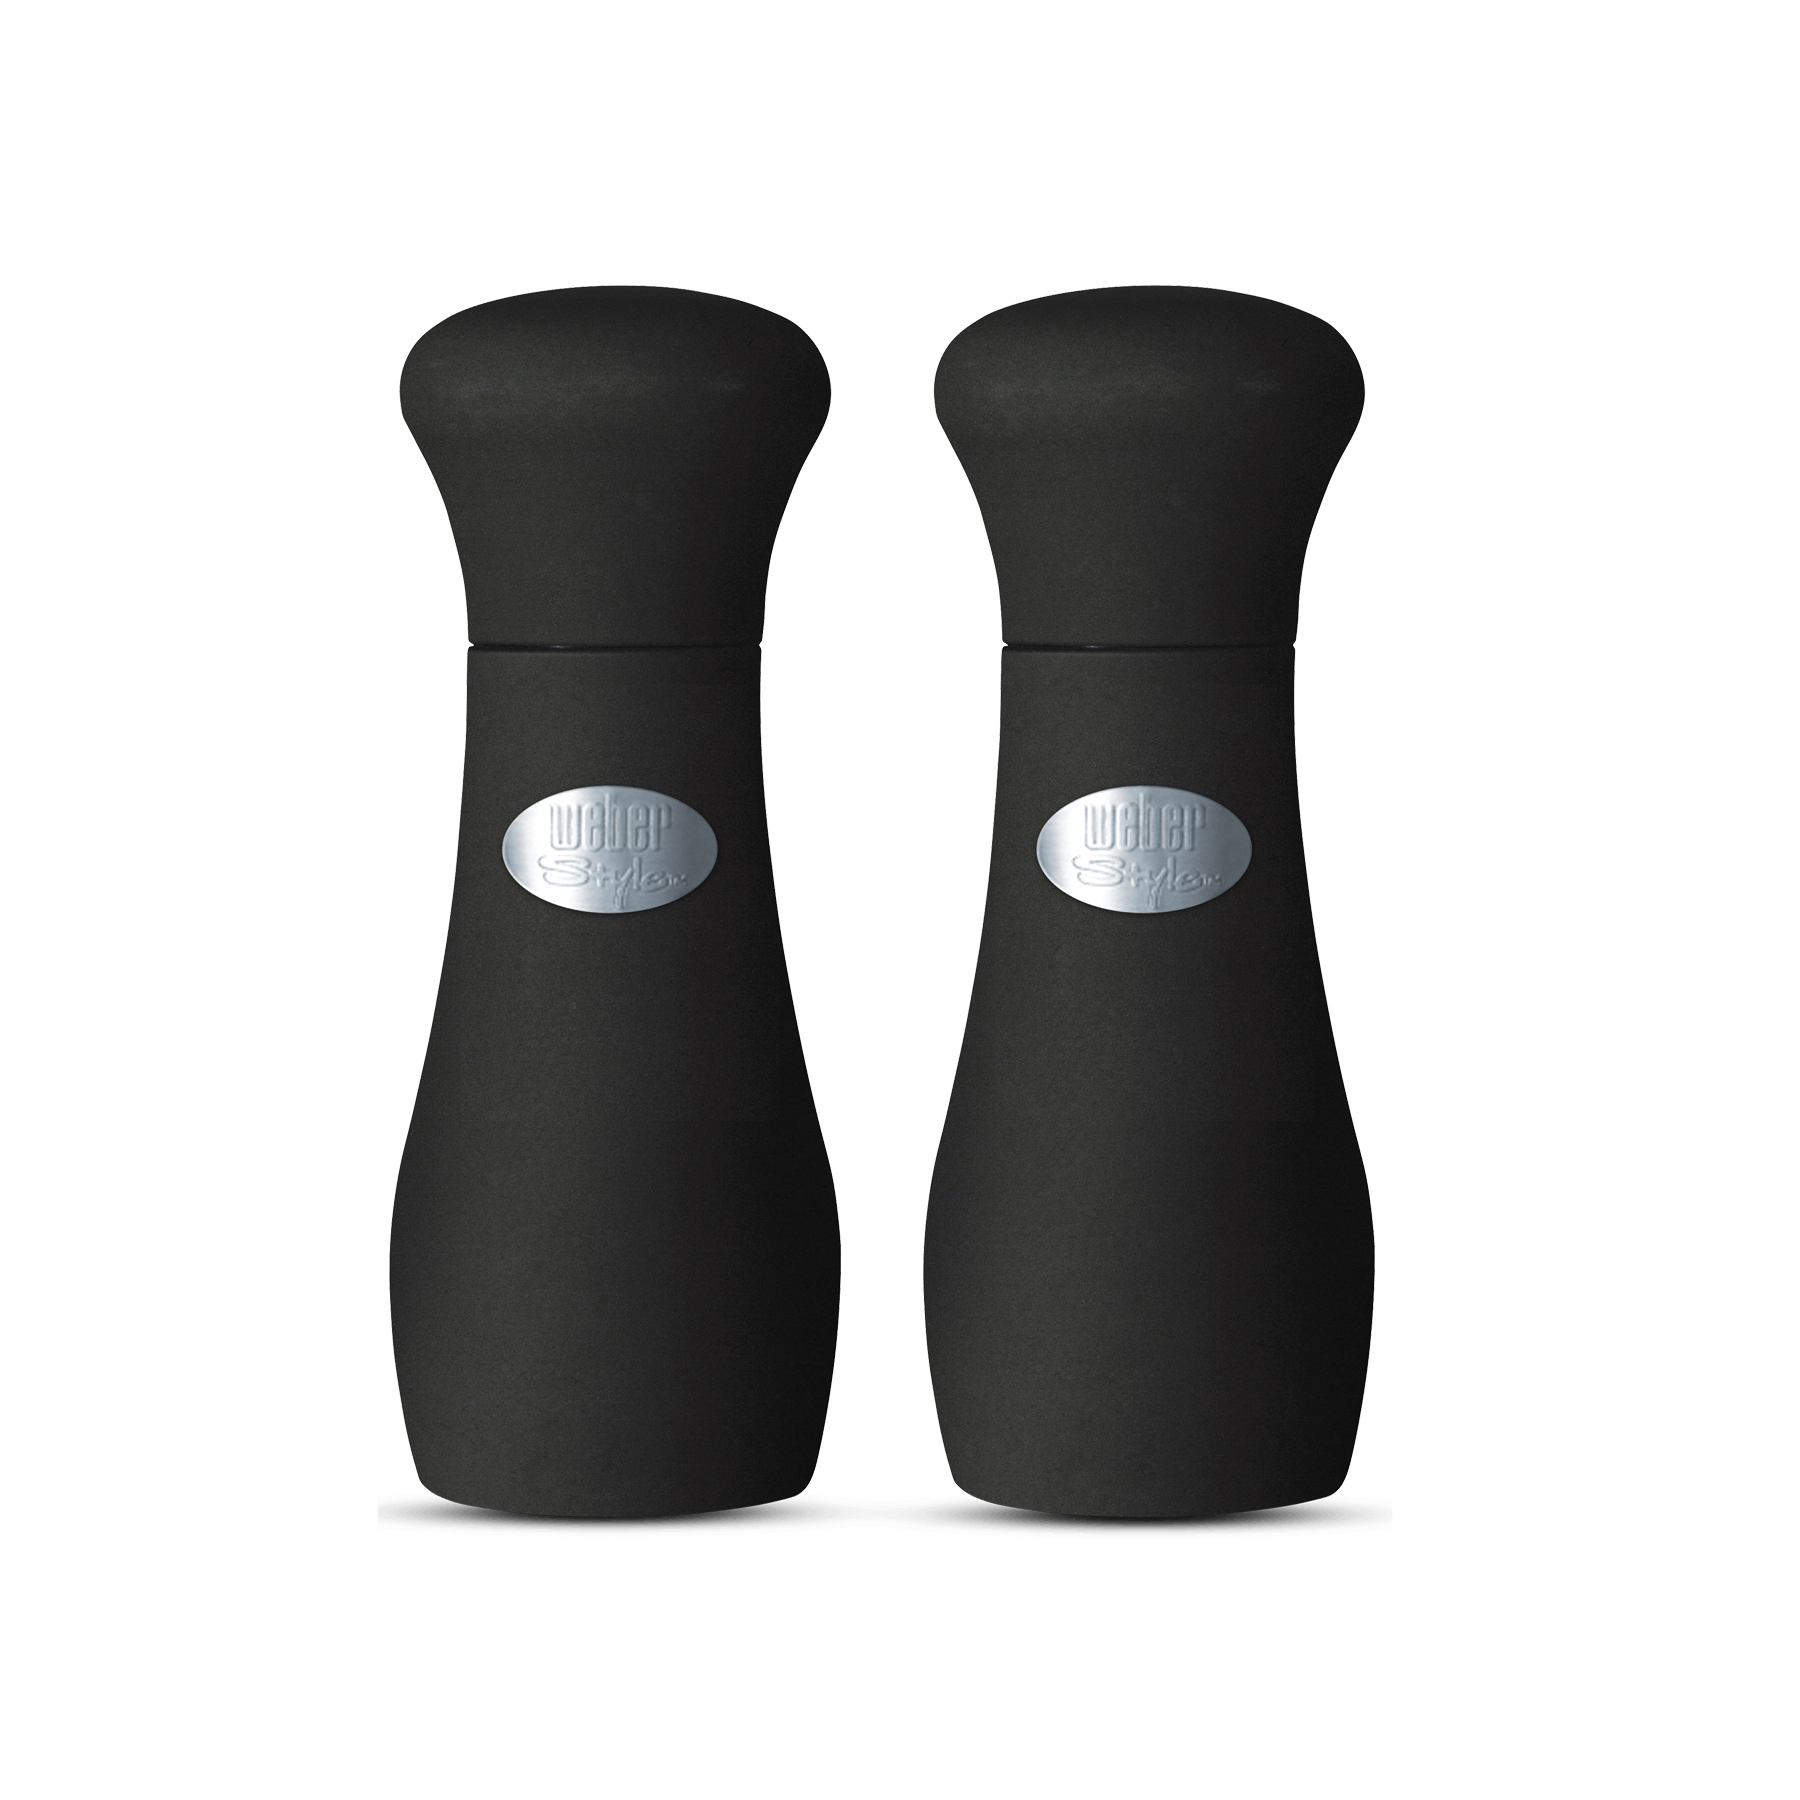 Premium Salt and Pepper Shaker Set